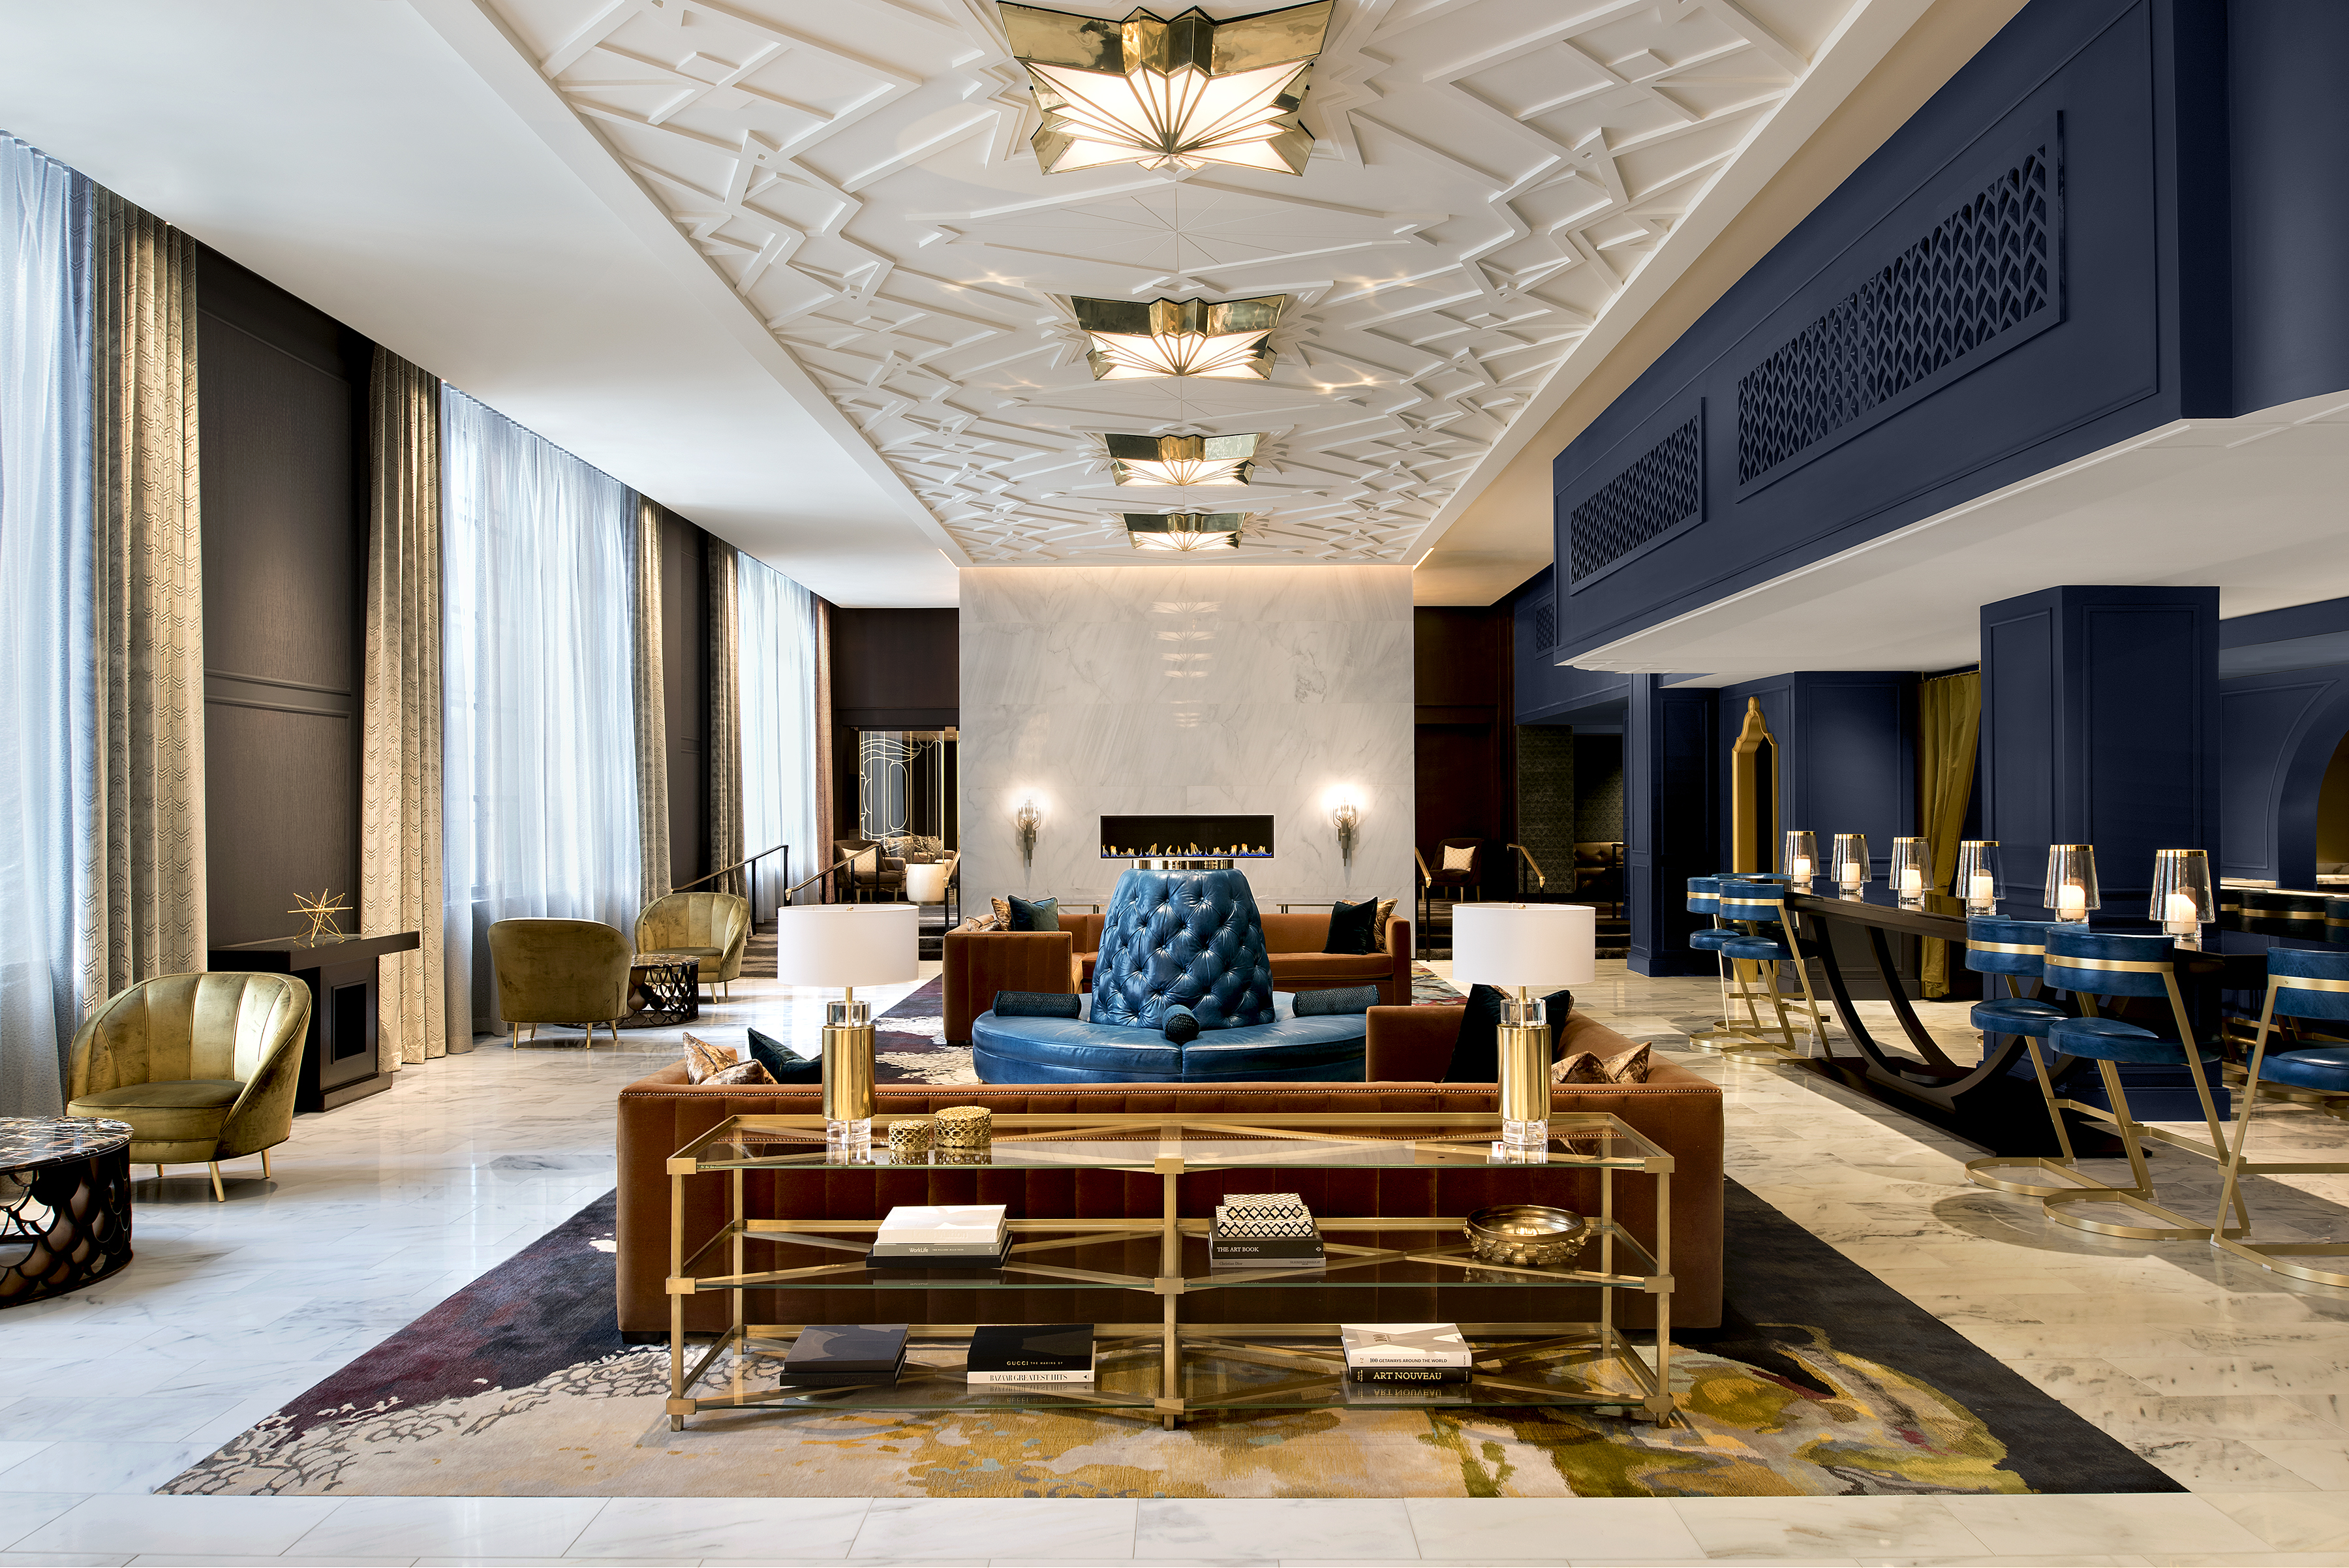 Hotel allegro architect magazine grec architects for Interior designer usa